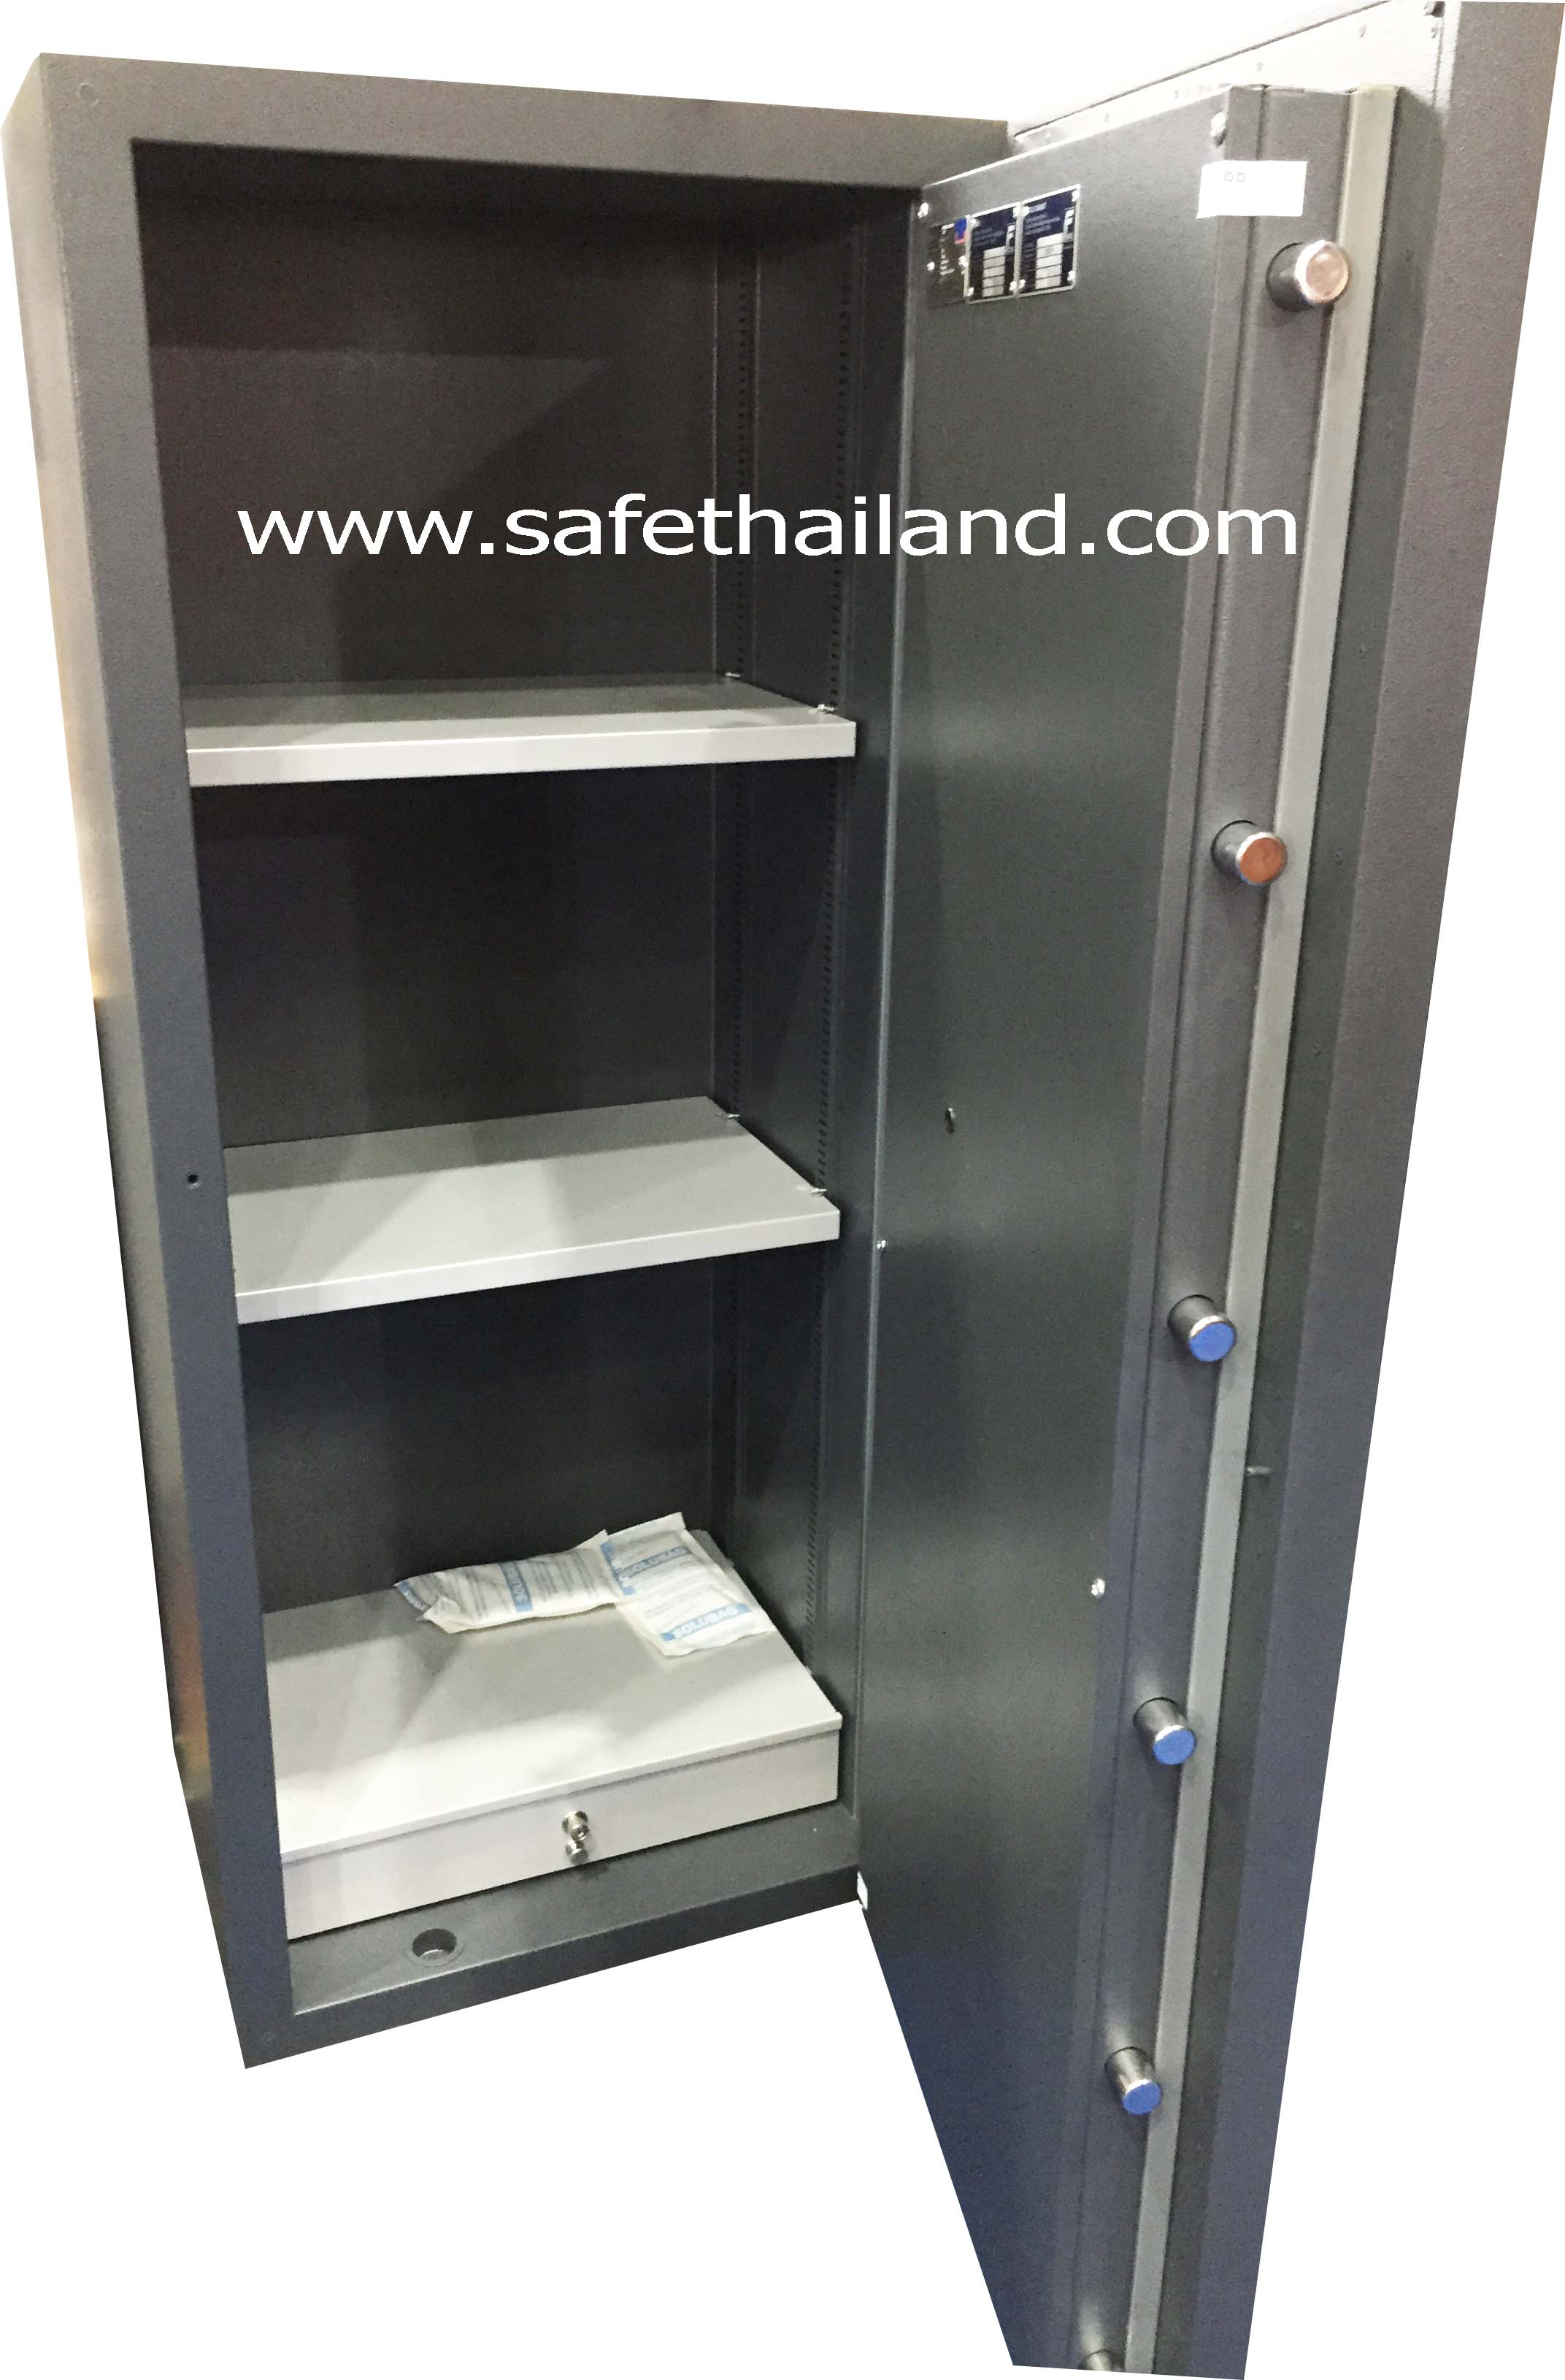 chubbsafes Duo Guard 350